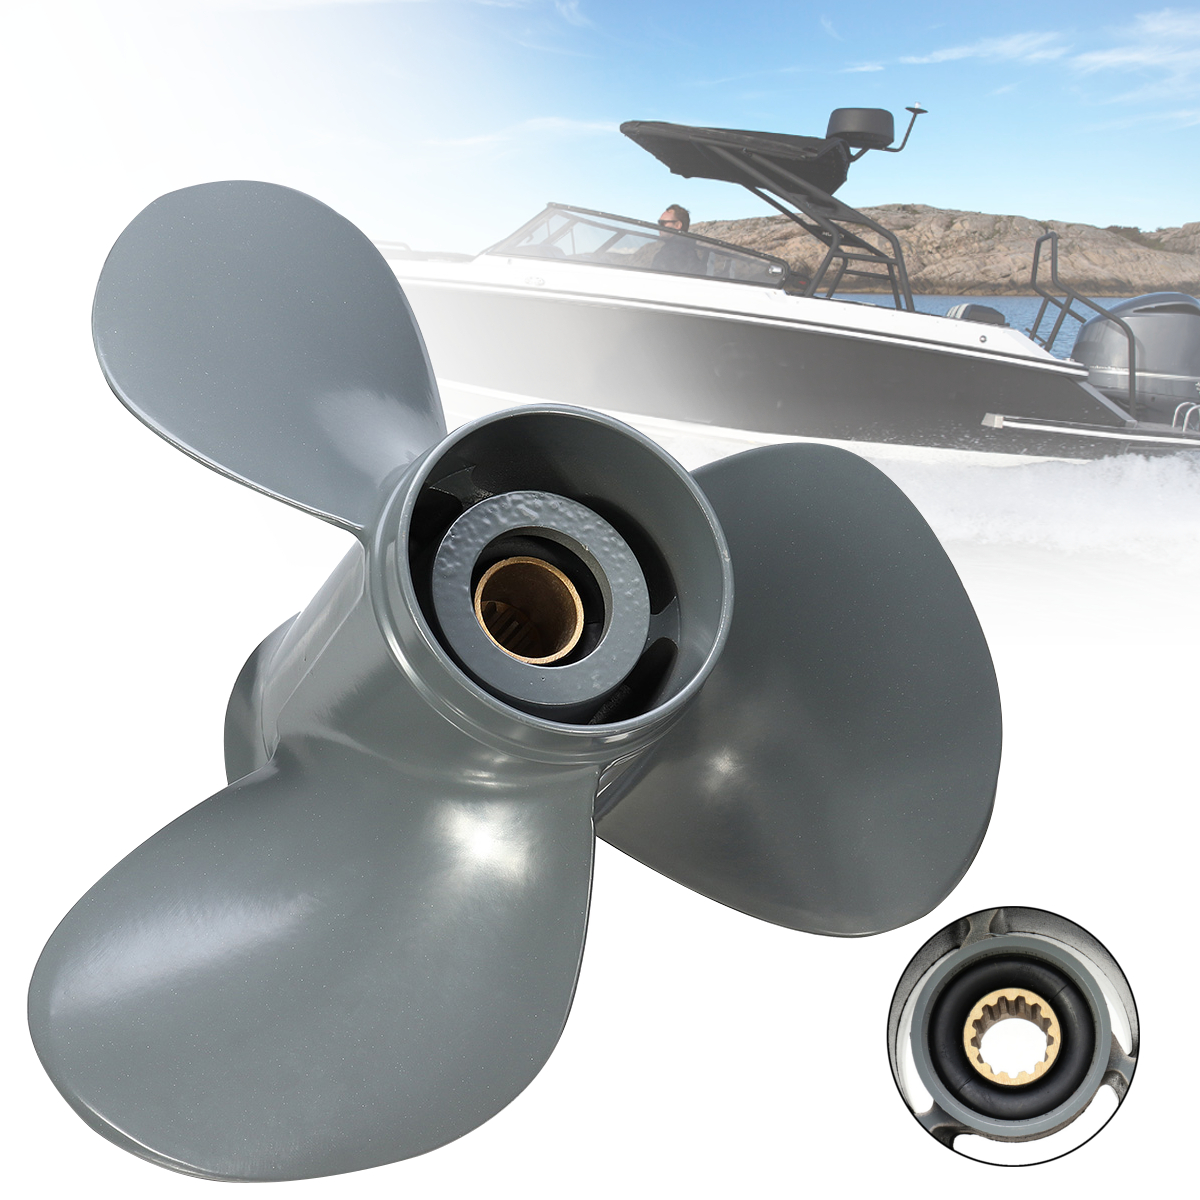 58130-ZV5-012AH 11 1/8 x 13 Boat Propeller For Honda Outboard Engine 35-60HP 13 Spline Tooths 3 Blades Aluminum Alloy Gray цены онлайн